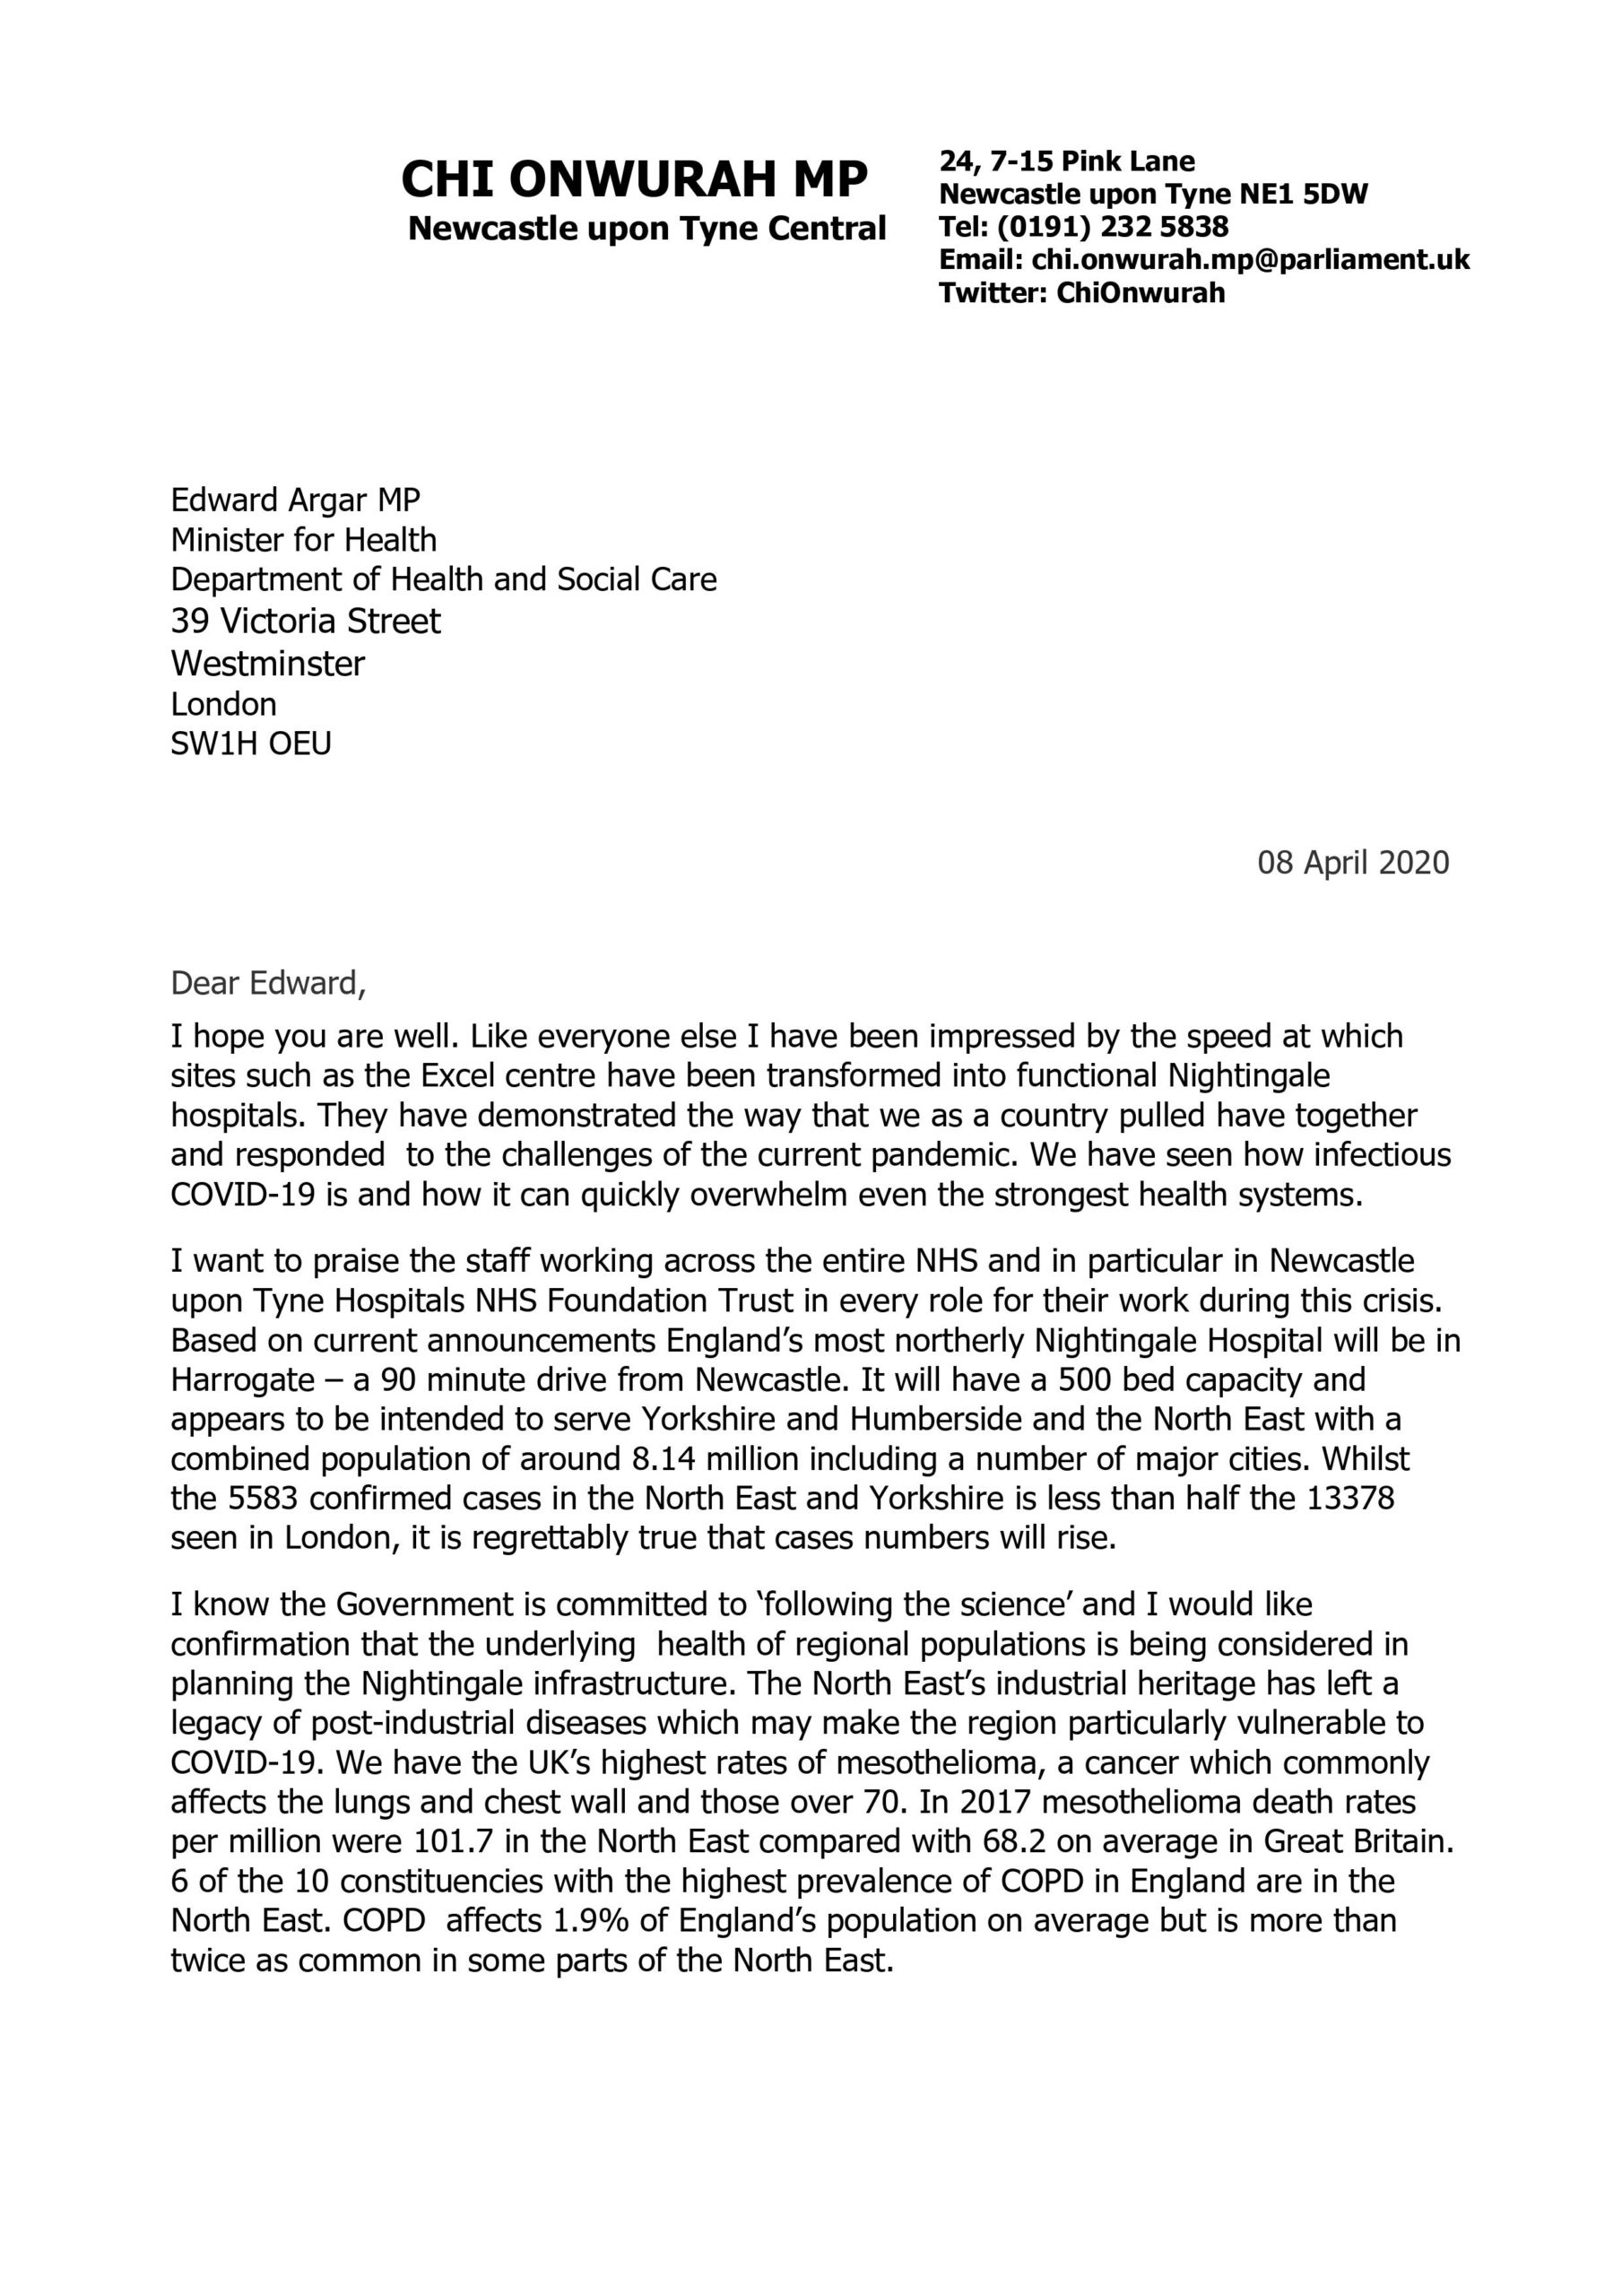 Chi writes to the Health Minister regarding underlying health inequality in the North East